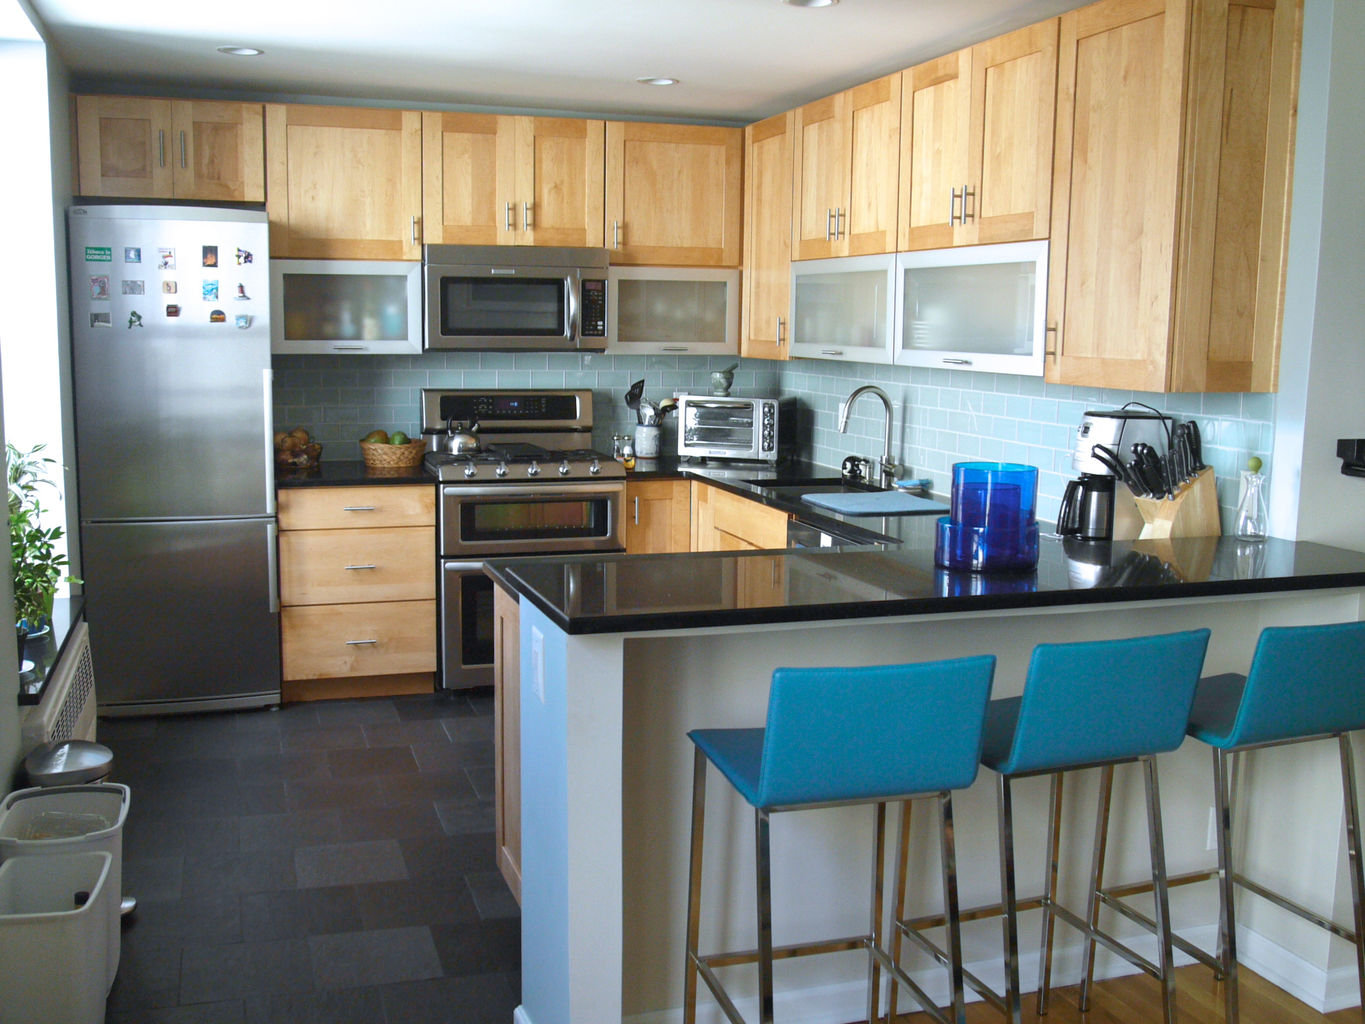 Arete indus pre cast concrete countertops home renovations and repairs - Partition kitchen dining ...